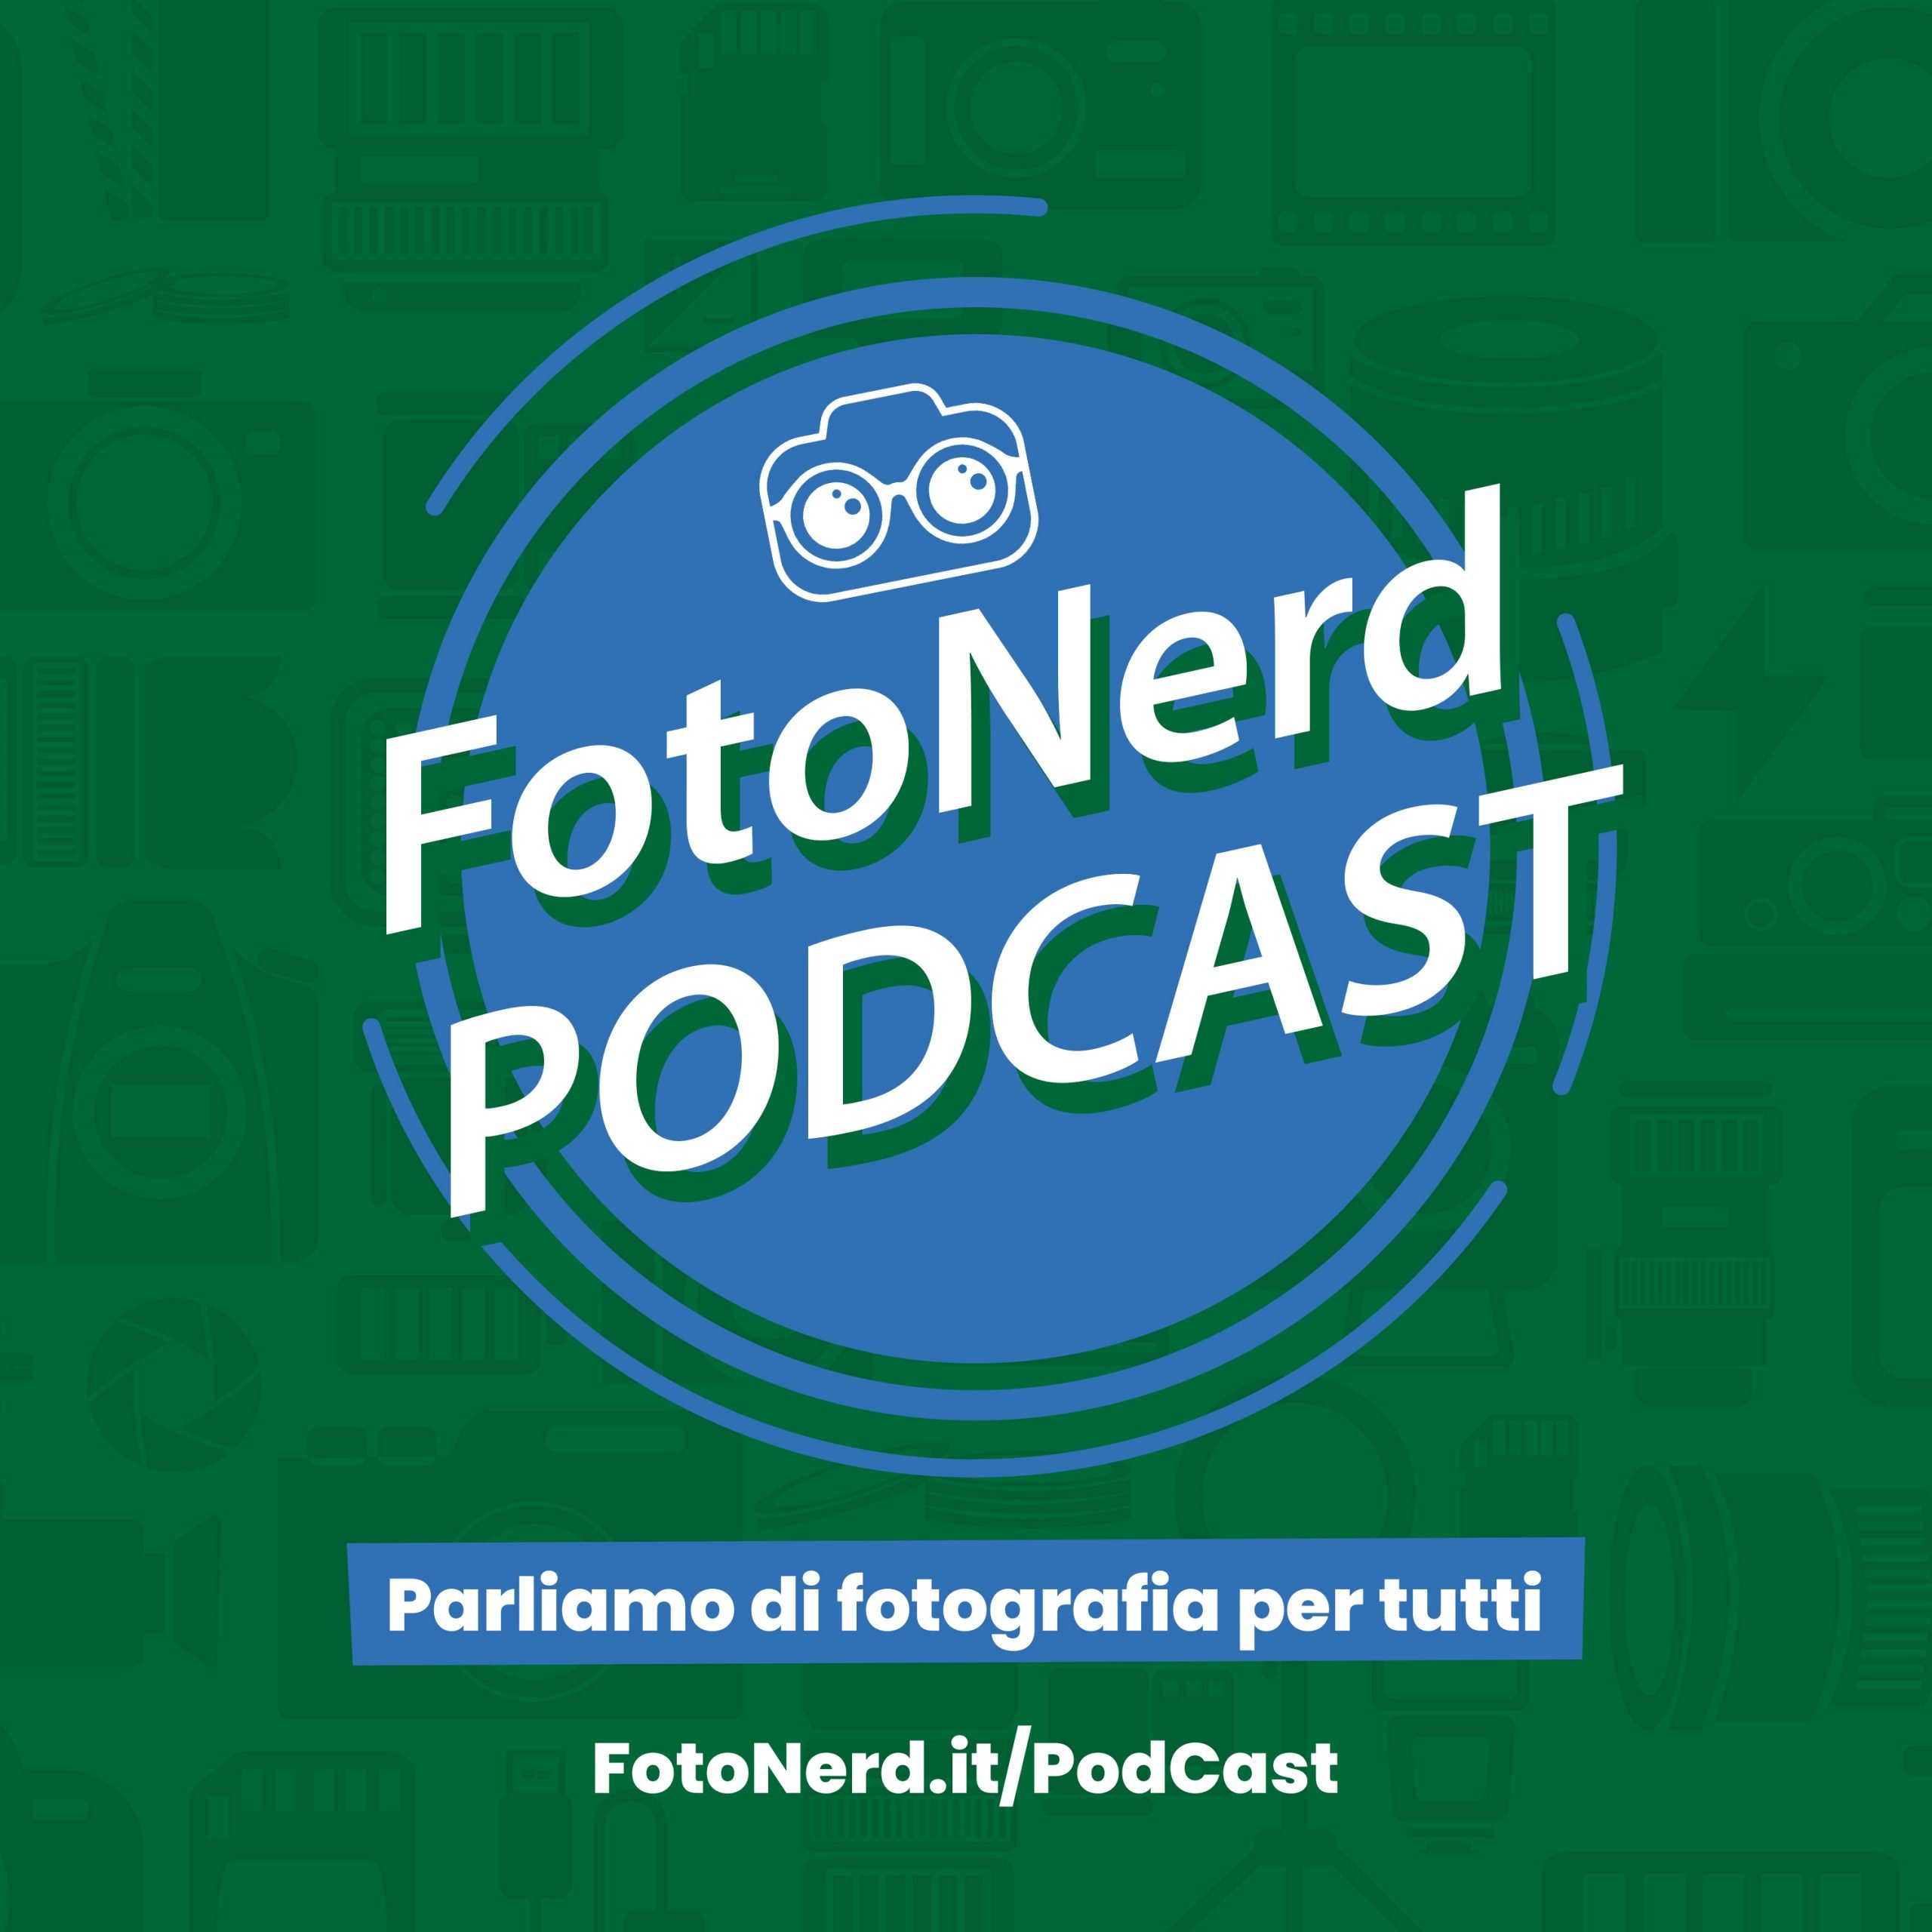 FotoNerd Podcast